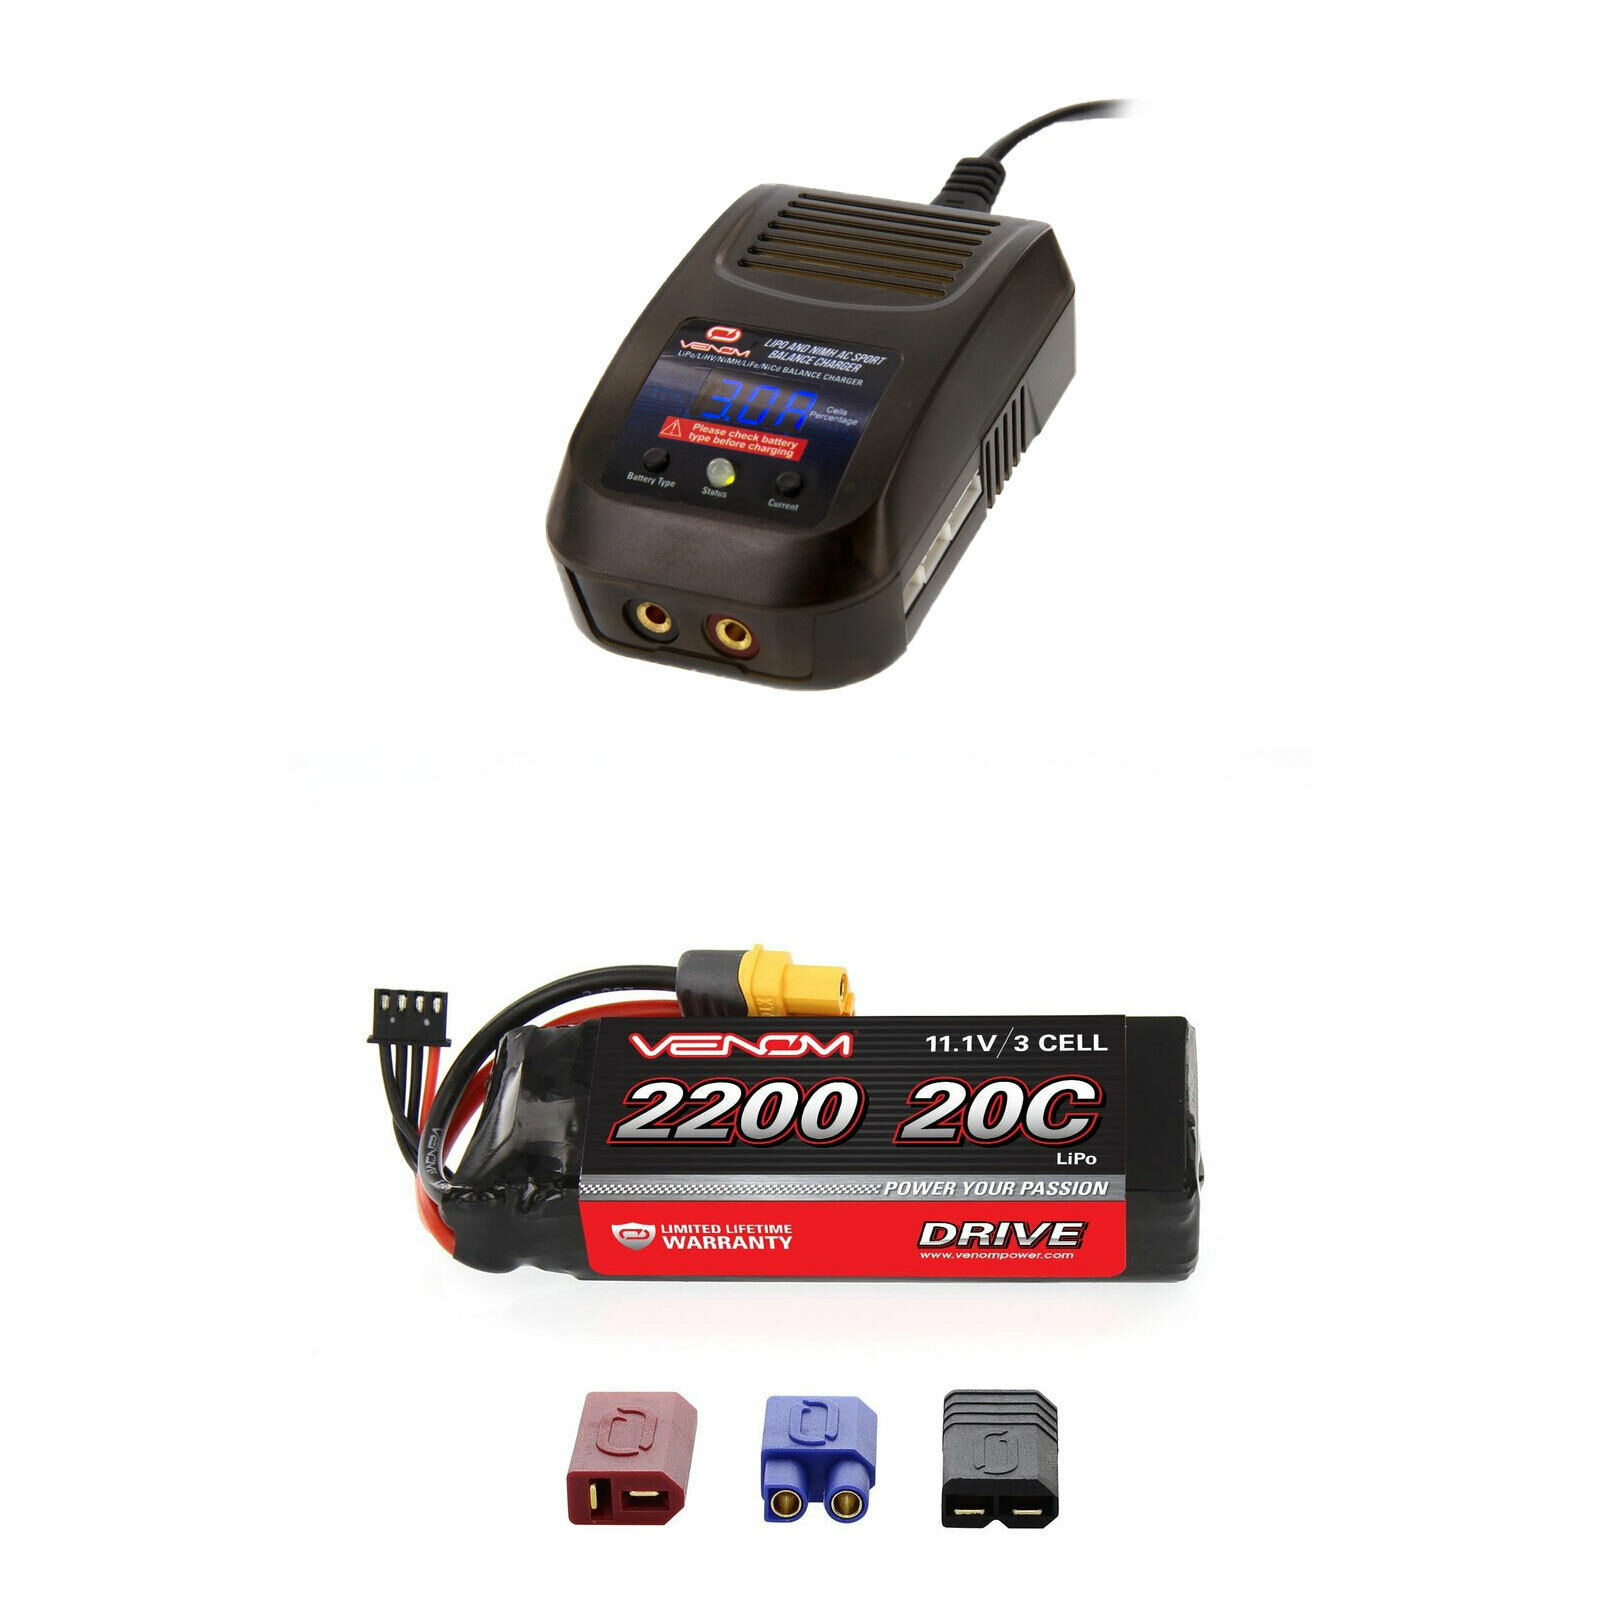 Venom 20C 3S 2200mAh 11.1V LiPo Battery and Sport Charger Combo